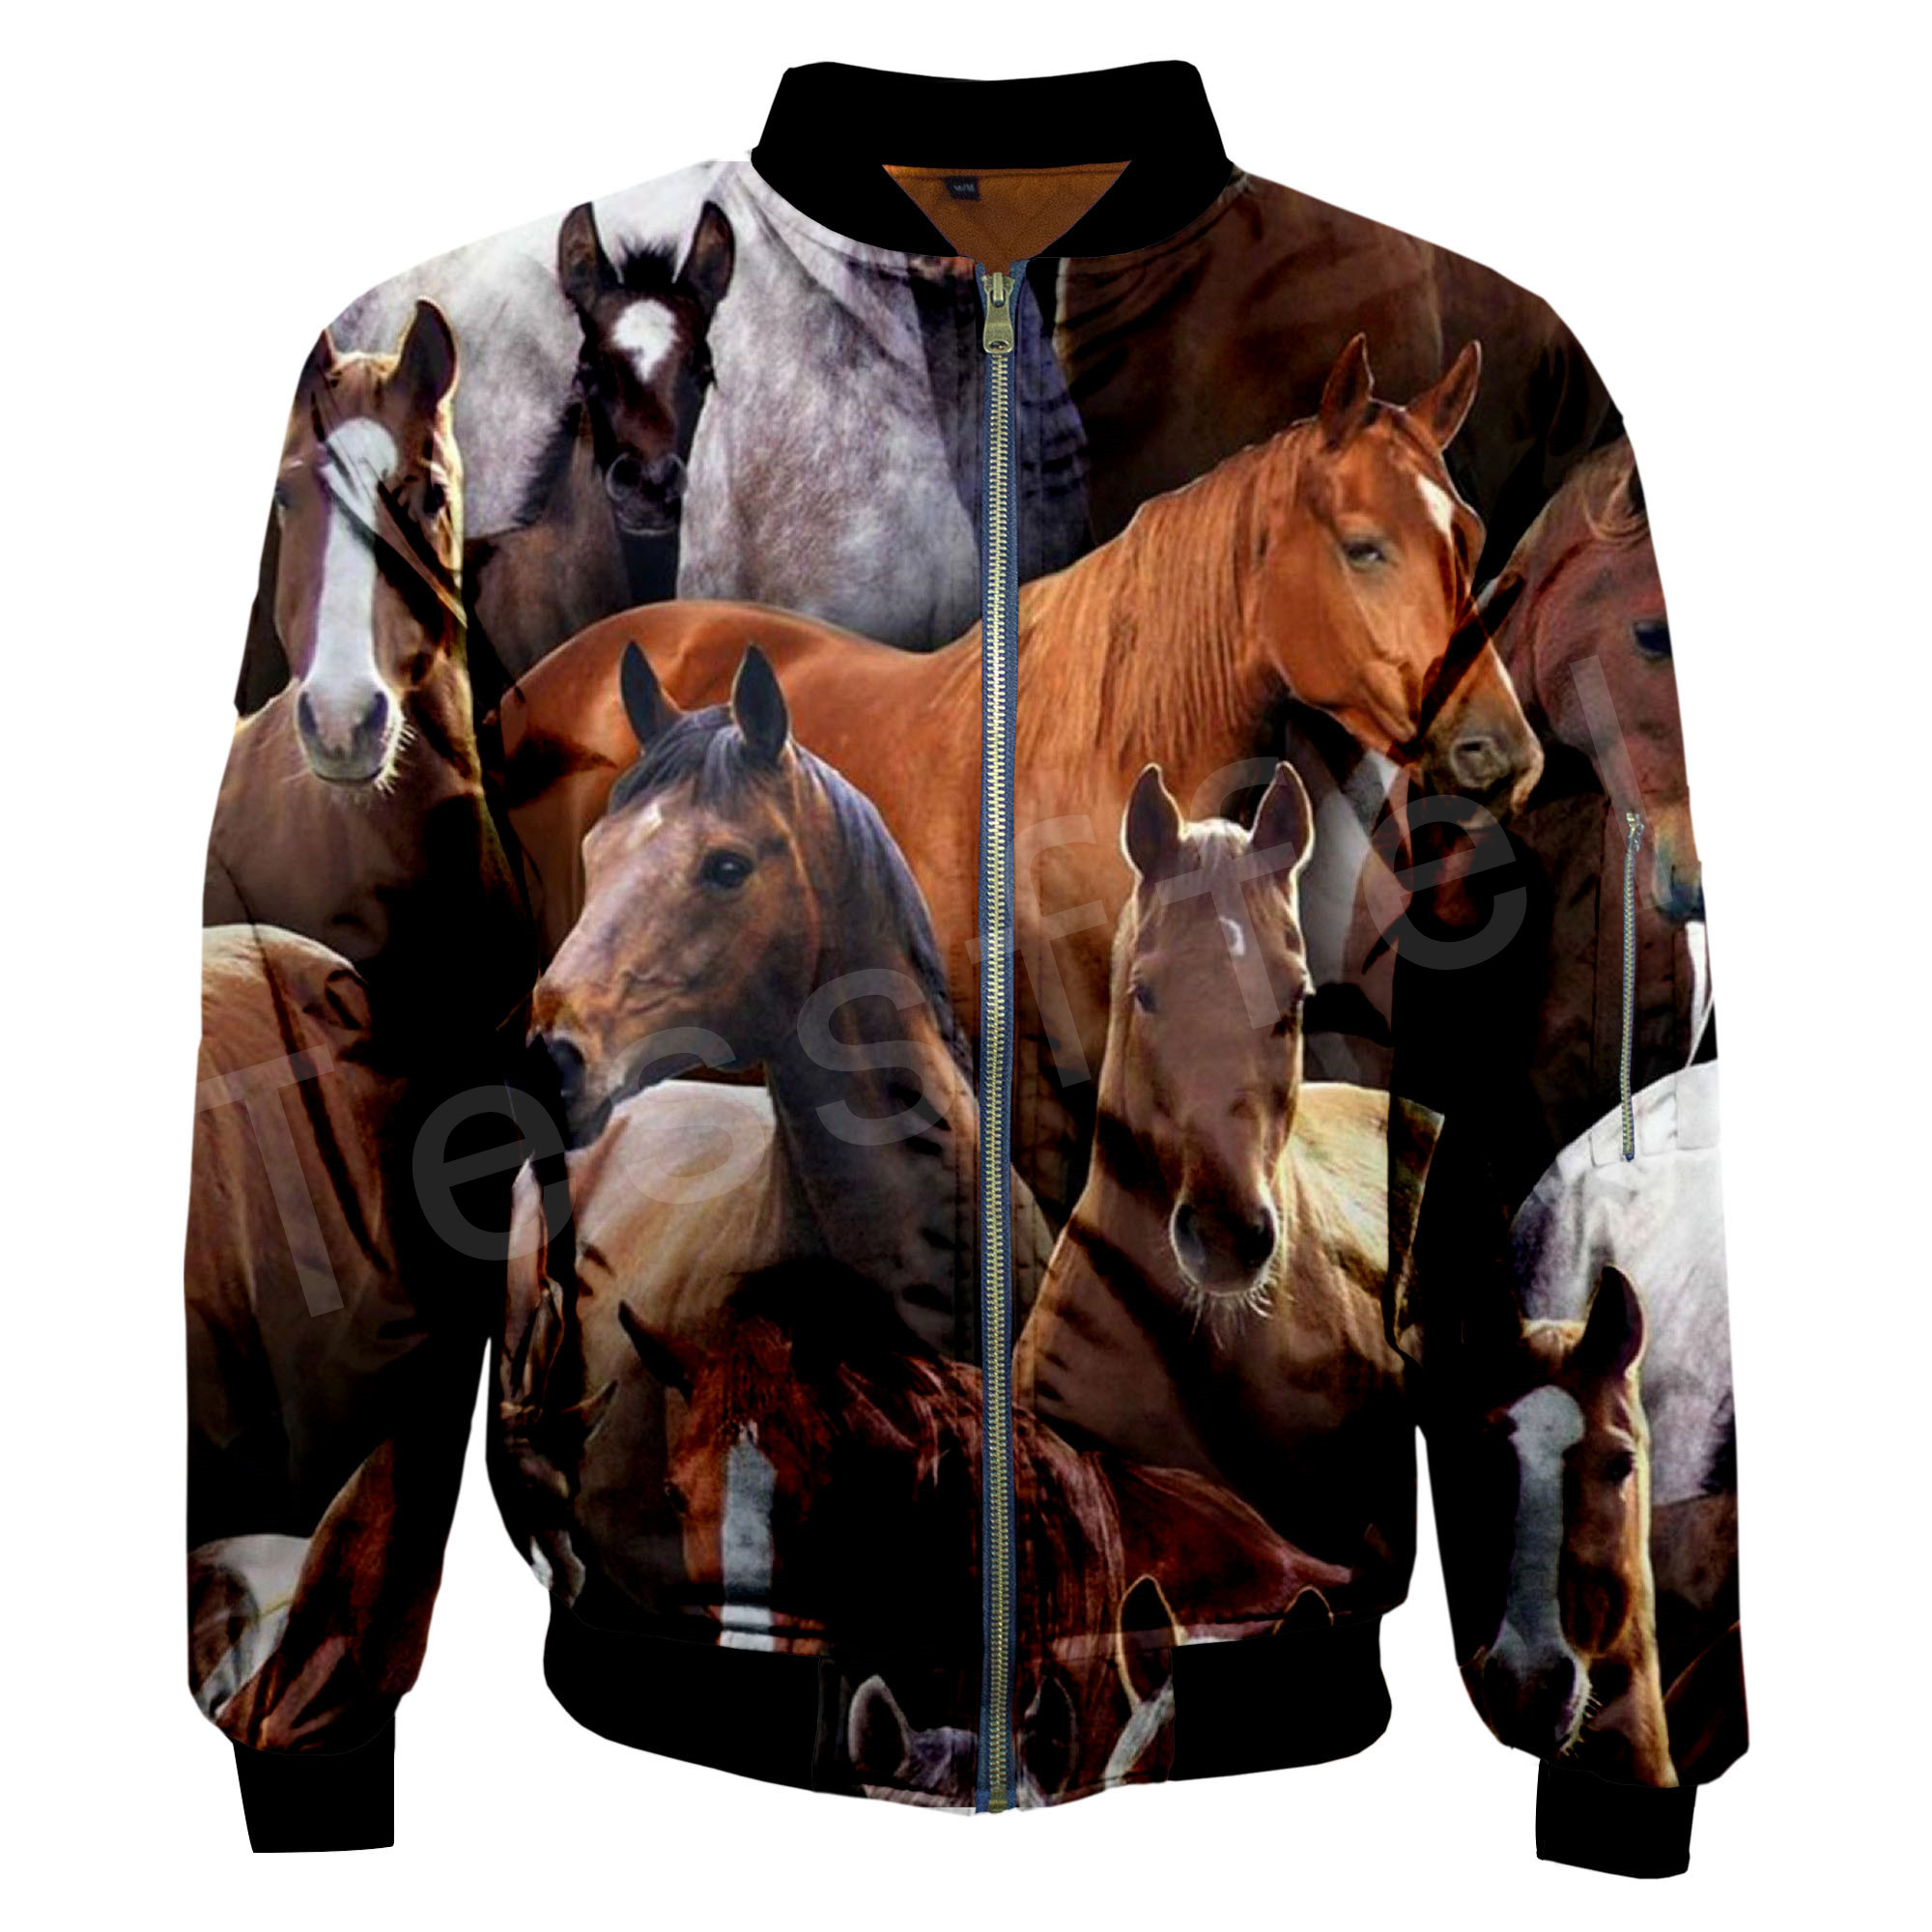 Tessffel Unisex Animal Love Horse Stronger Horse Tracksuit Casual Hot Style Men/Women 3DPrint Hoodies/Hoodie/Bomber Jackets S10